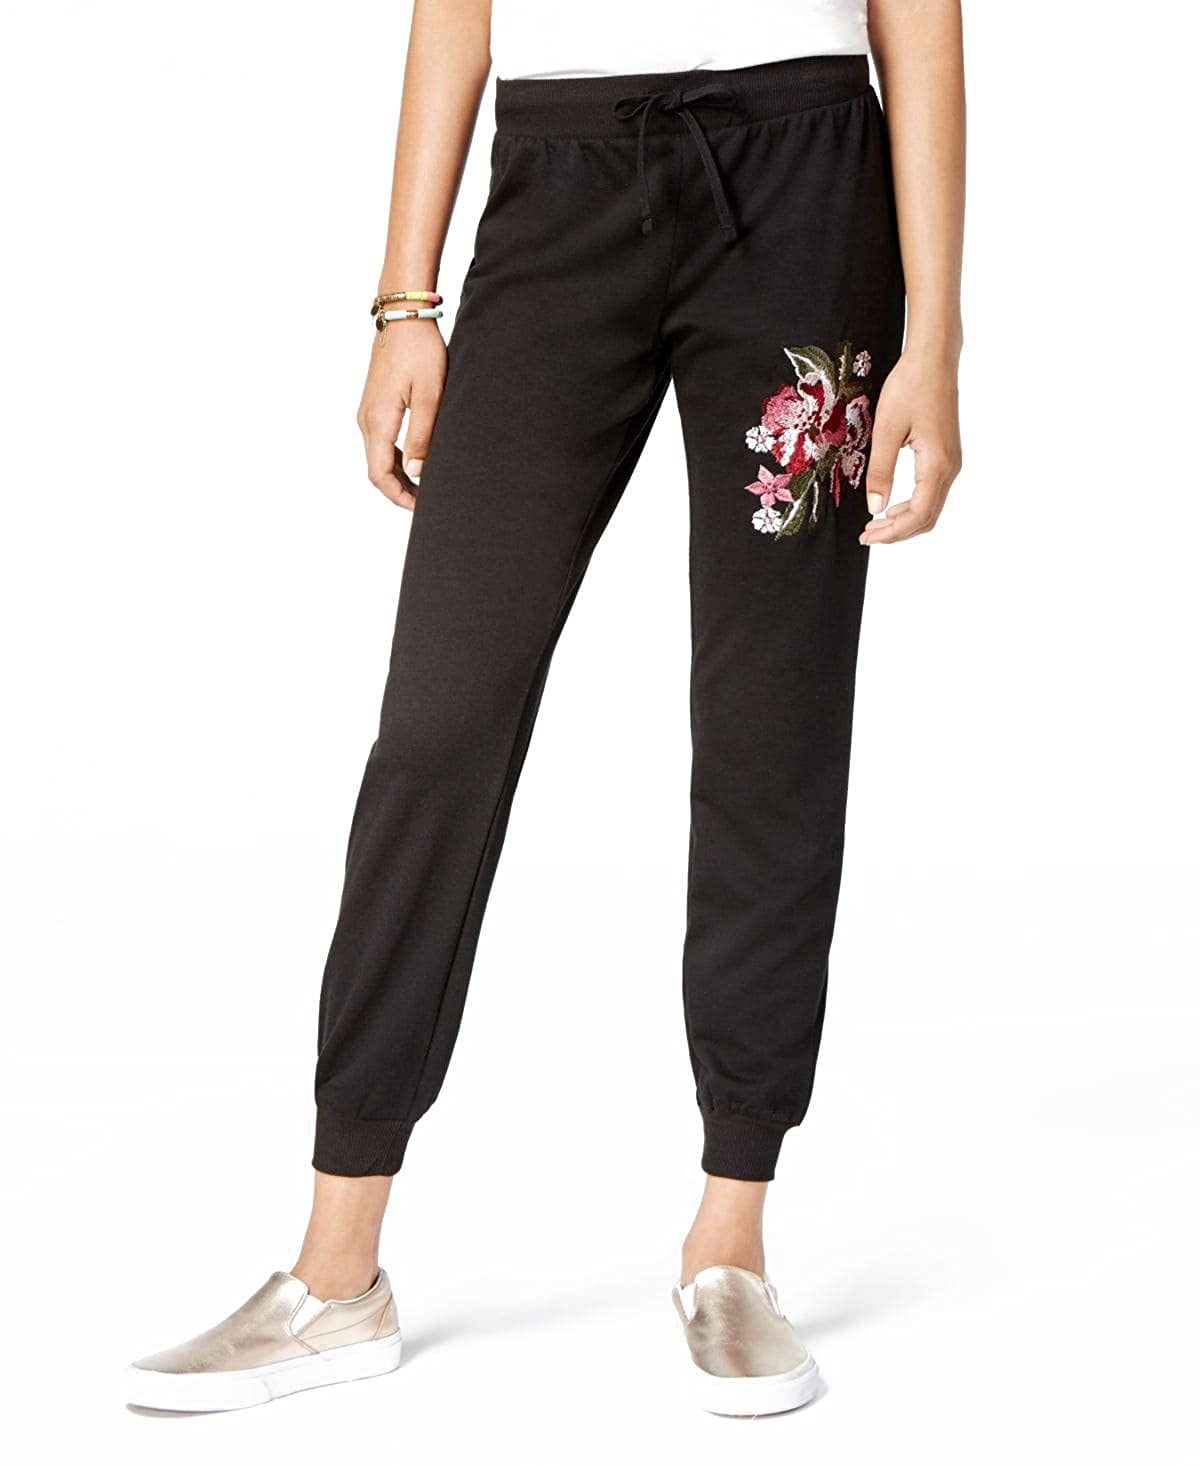 UltraFlirt Womens Embroidered Joggers Pants Black, S